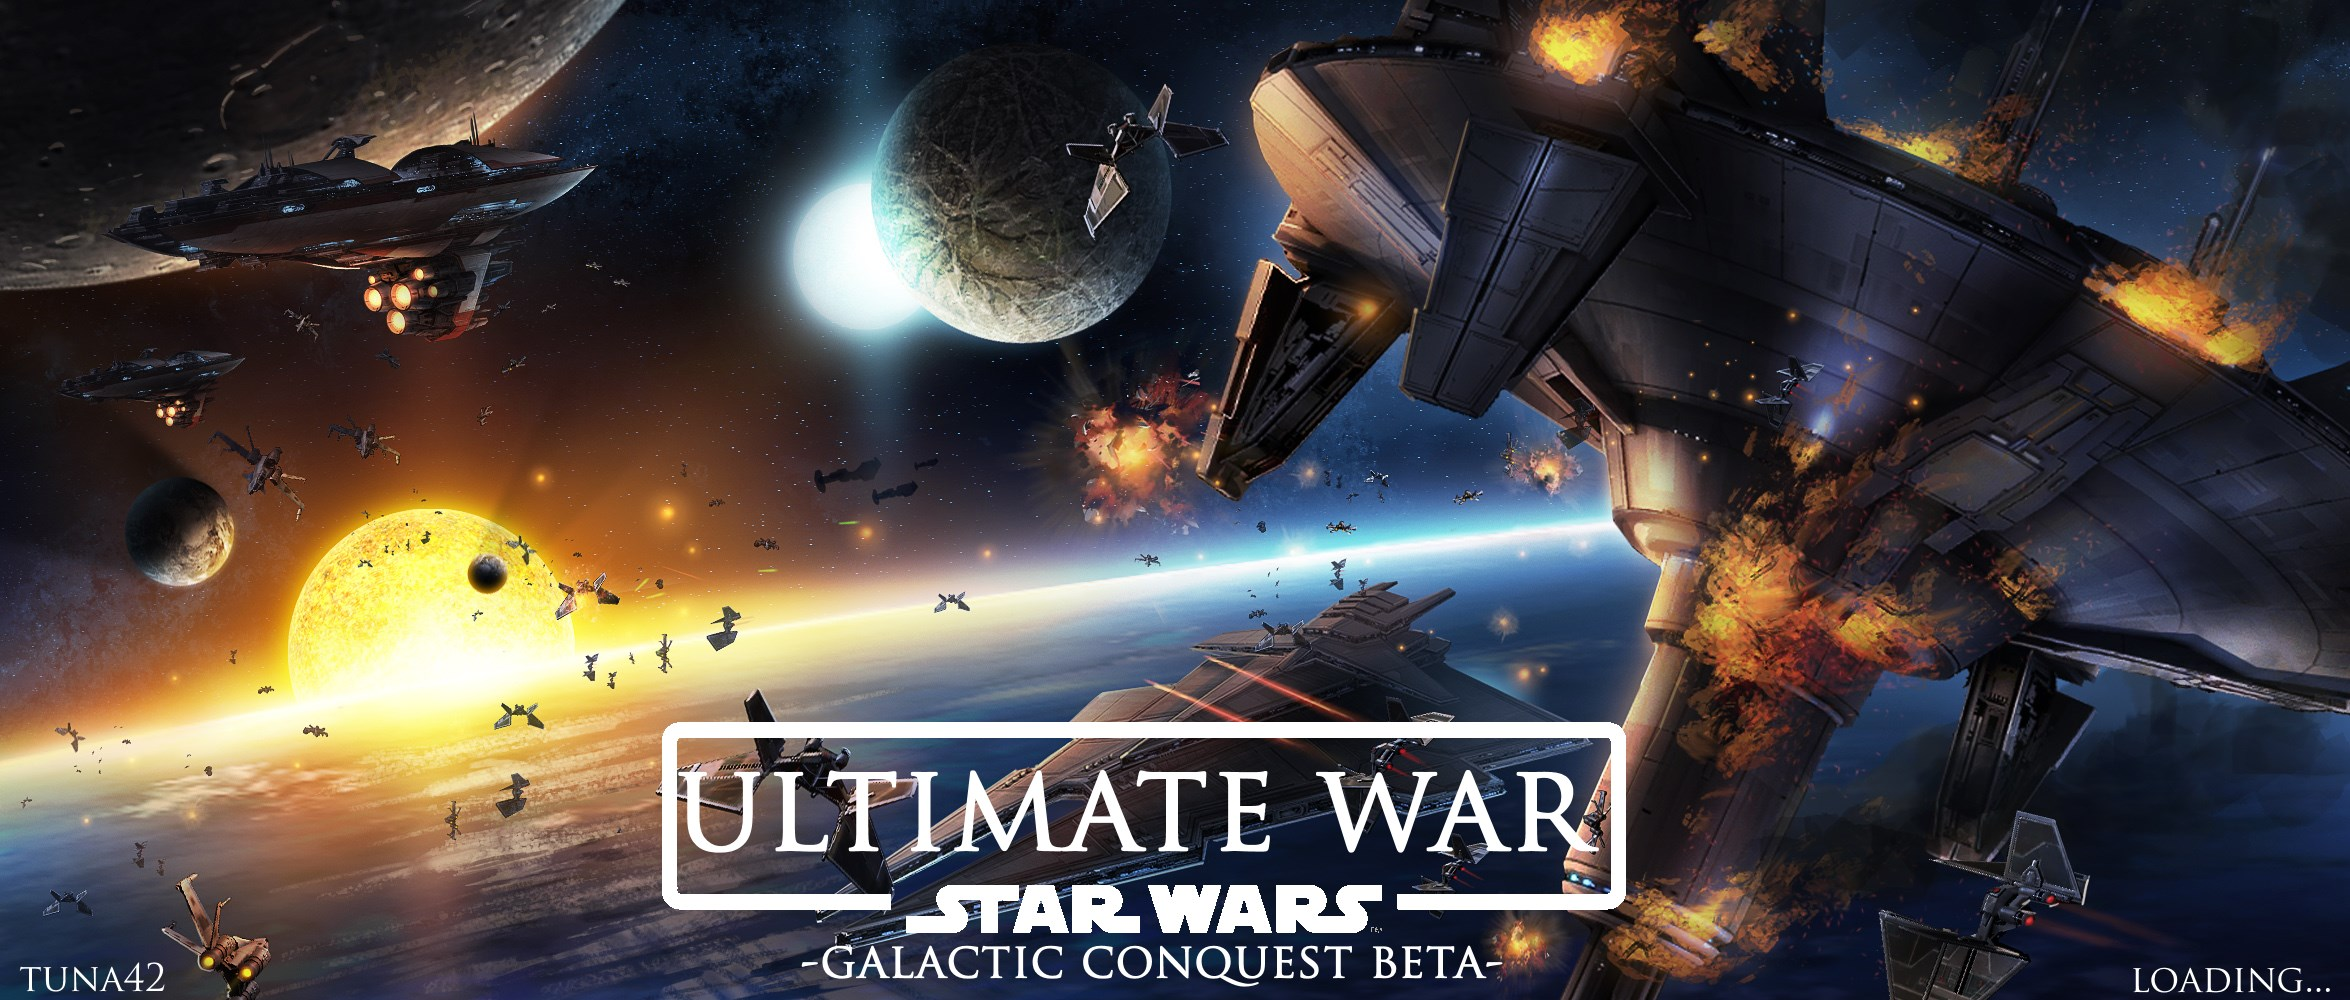 The old republic: ultimate war mod for star wars: empire at war.